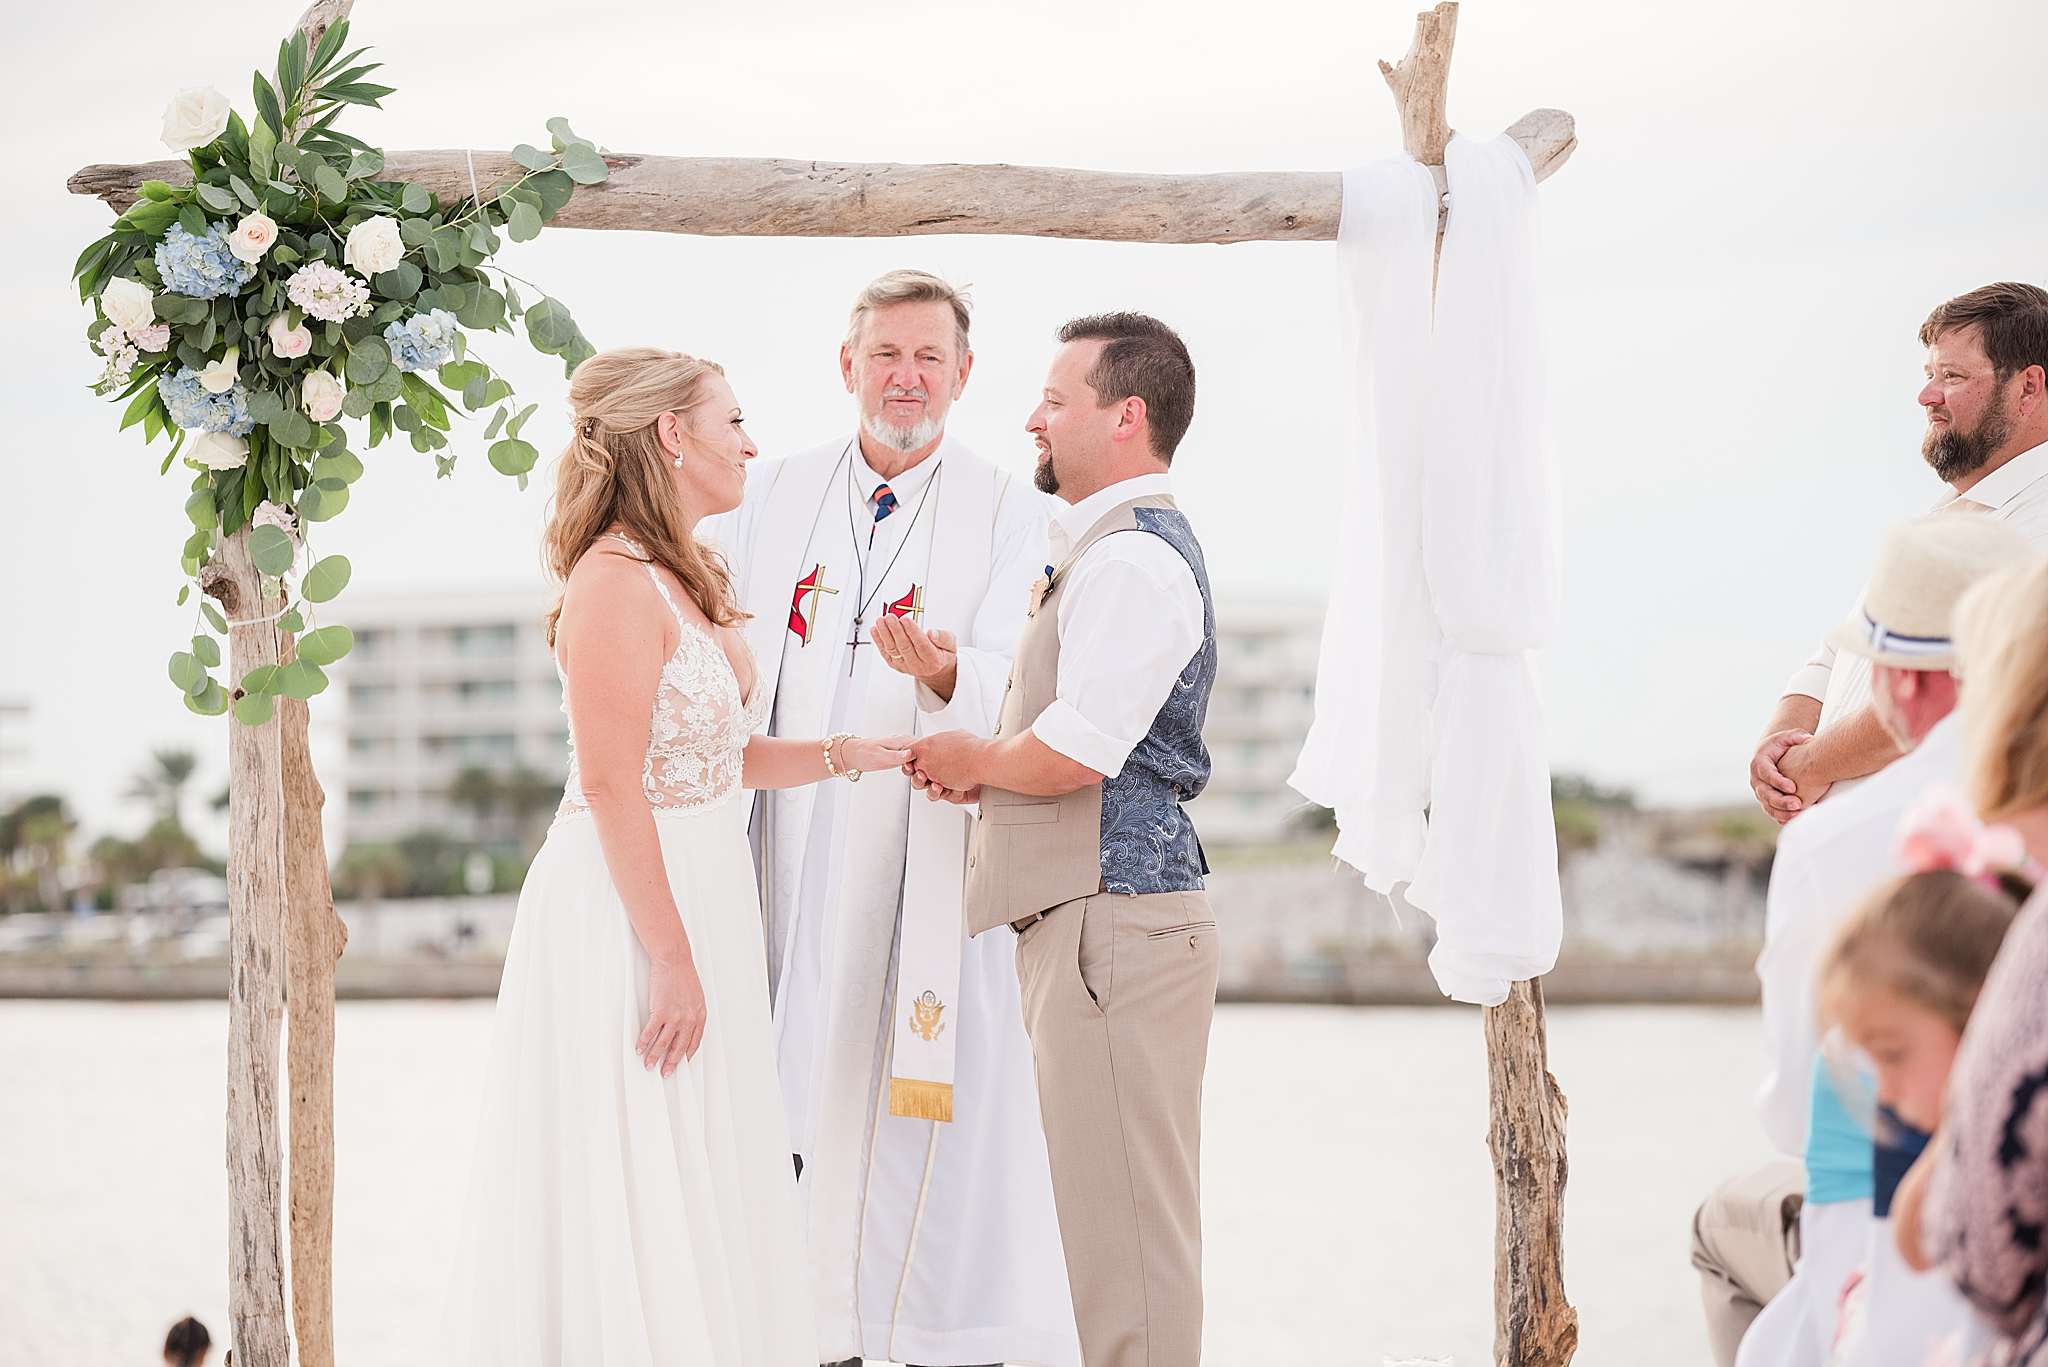 groom gives bride ring during beach wedding